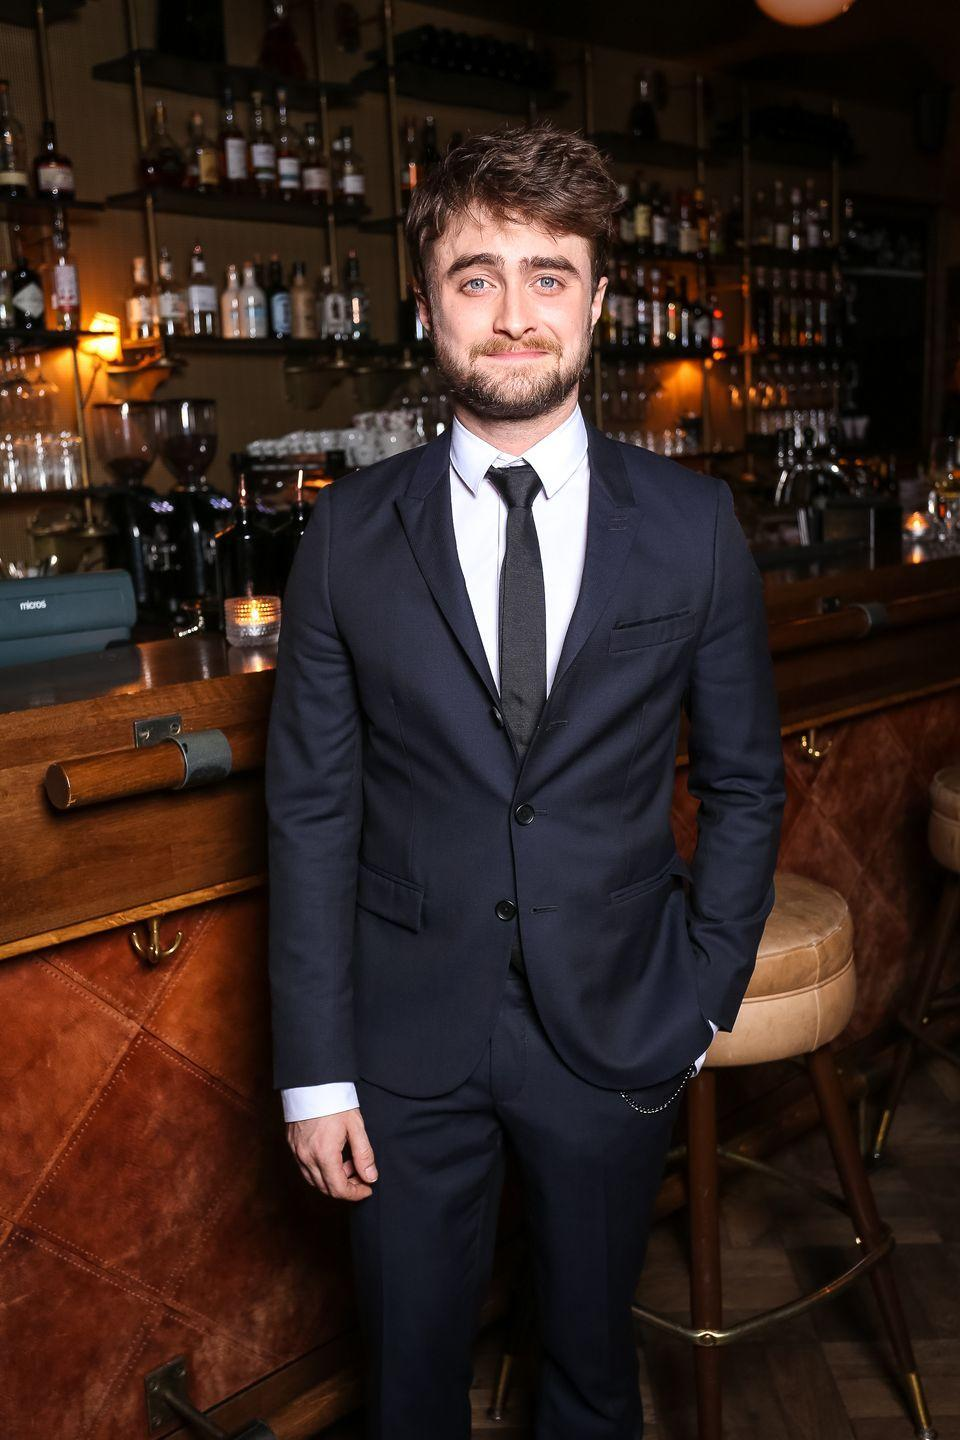 "<p>Radcliffe admitted in an <a href=""https://kaleistyleguide.com/films/0/career-ender-actors-hated-films/daniel-radcliffe-half-blood-prince/"" rel=""nofollow noopener"" target=""_blank"" data-ylk=""slk:interview"" class=""link rapid-noclick-resp"">interview</a> he doesn't like watching the 2009 film because, ""I'm just not very good in it. I hate it...my acting is very one-note and I can see I got complacent and what I was trying to do just didn't come across. My best film is the fifth one [<em>Order of the Phoenix</em>] because I can see a progression."" </p>"